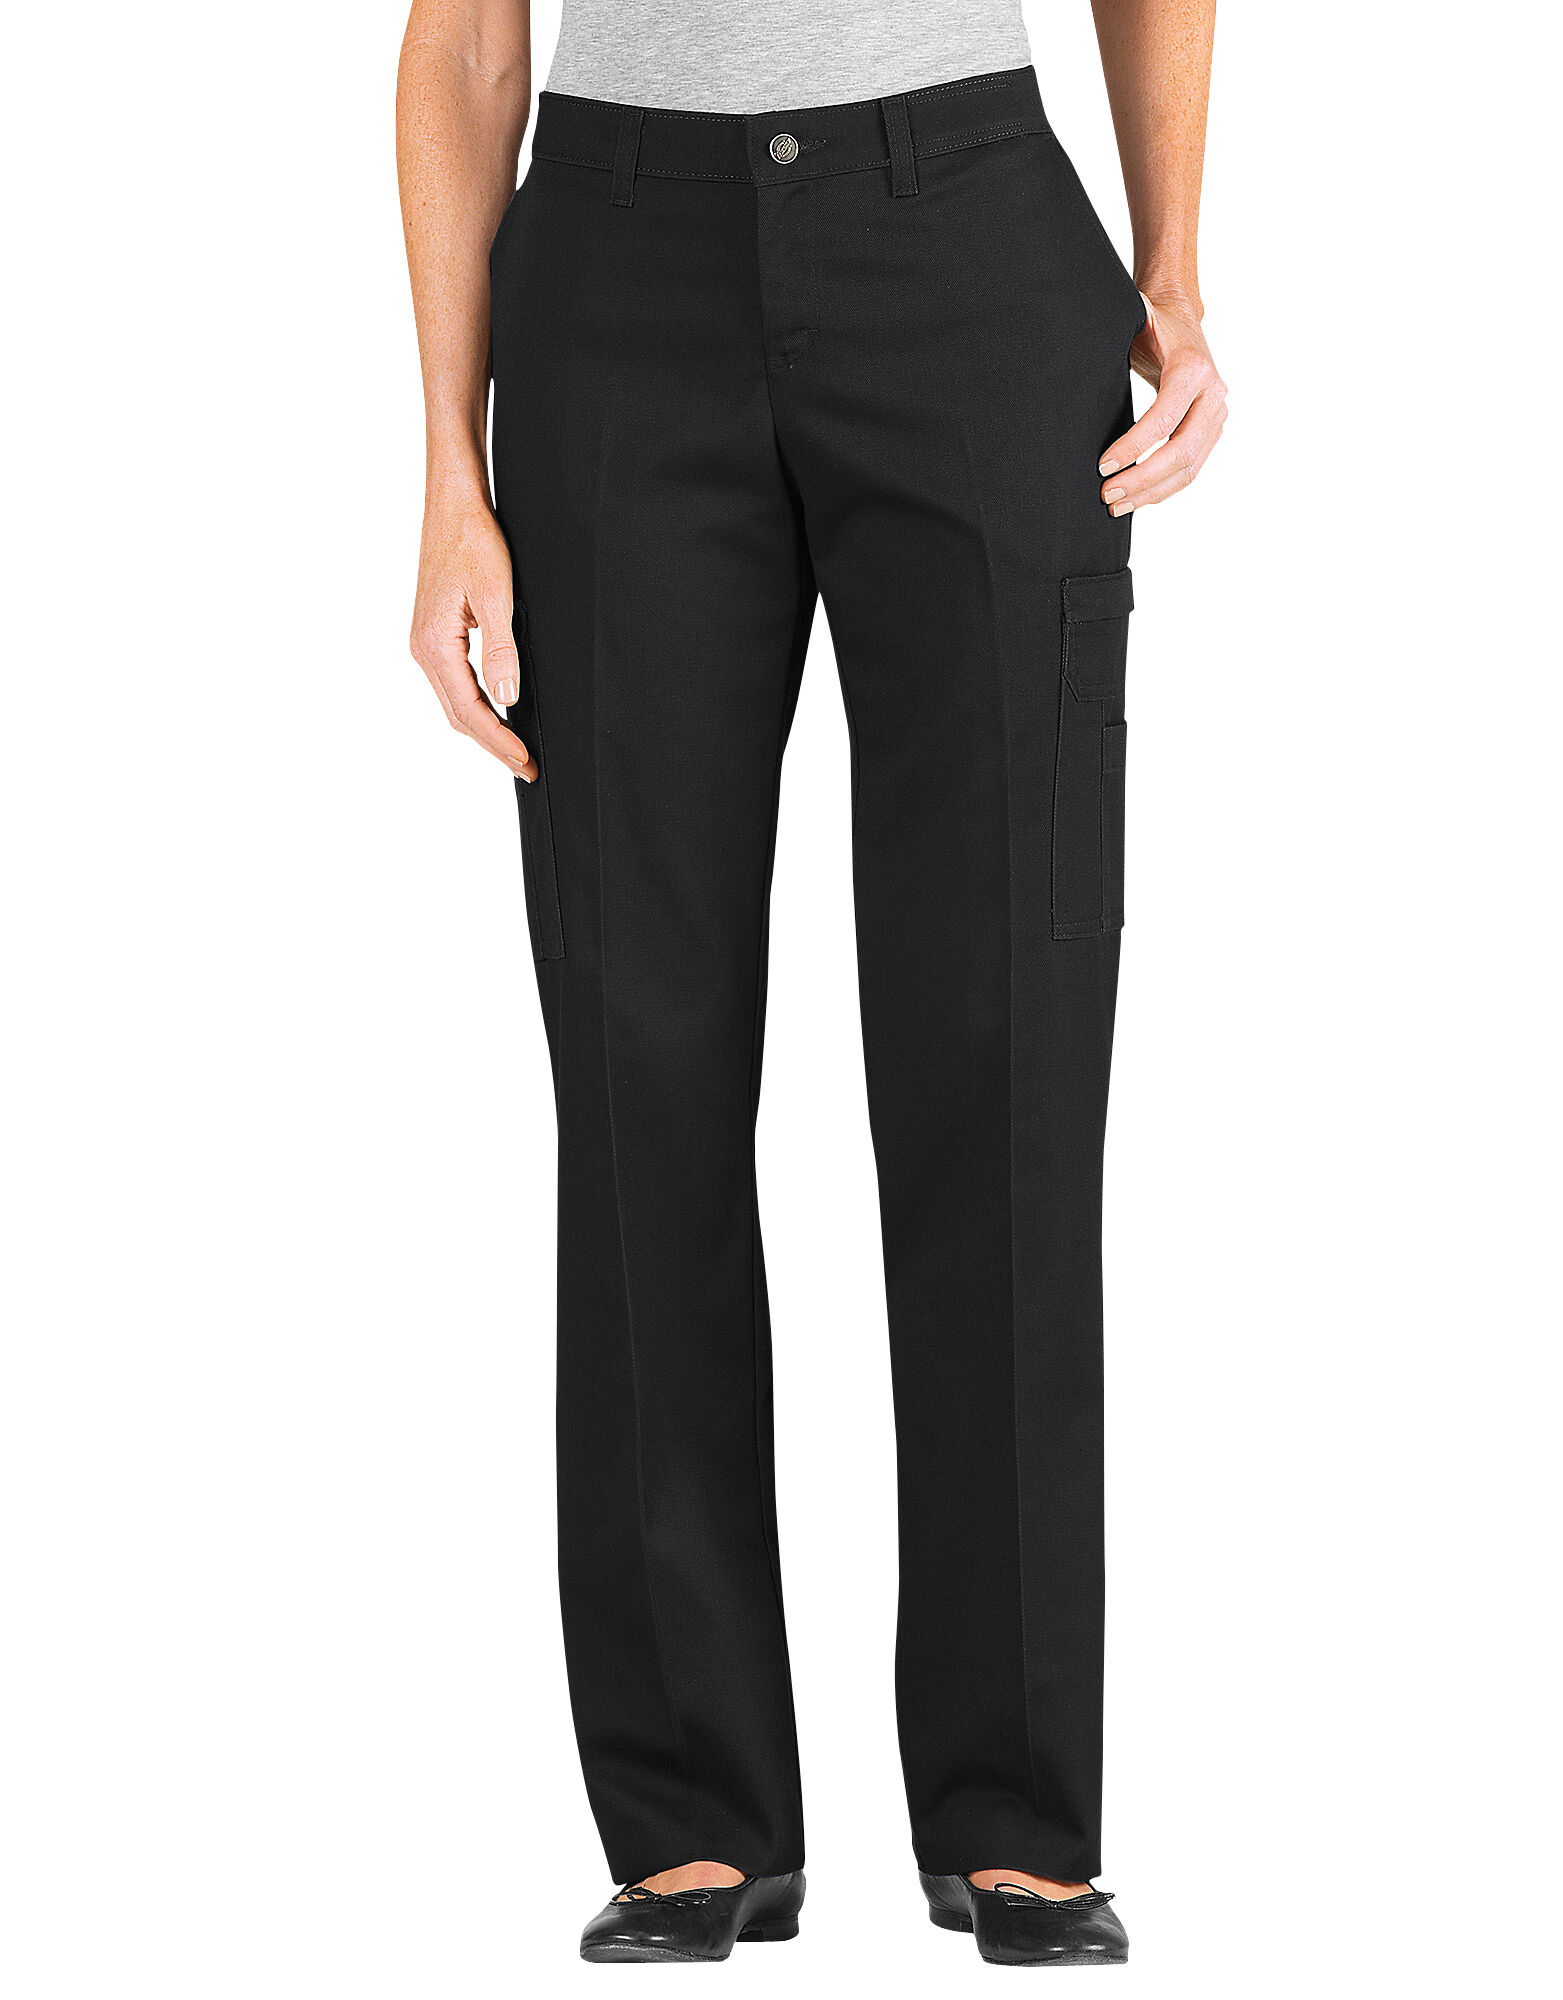 Free shipping and returns on Women's Pants Work Clothing at it24-ieop.gq